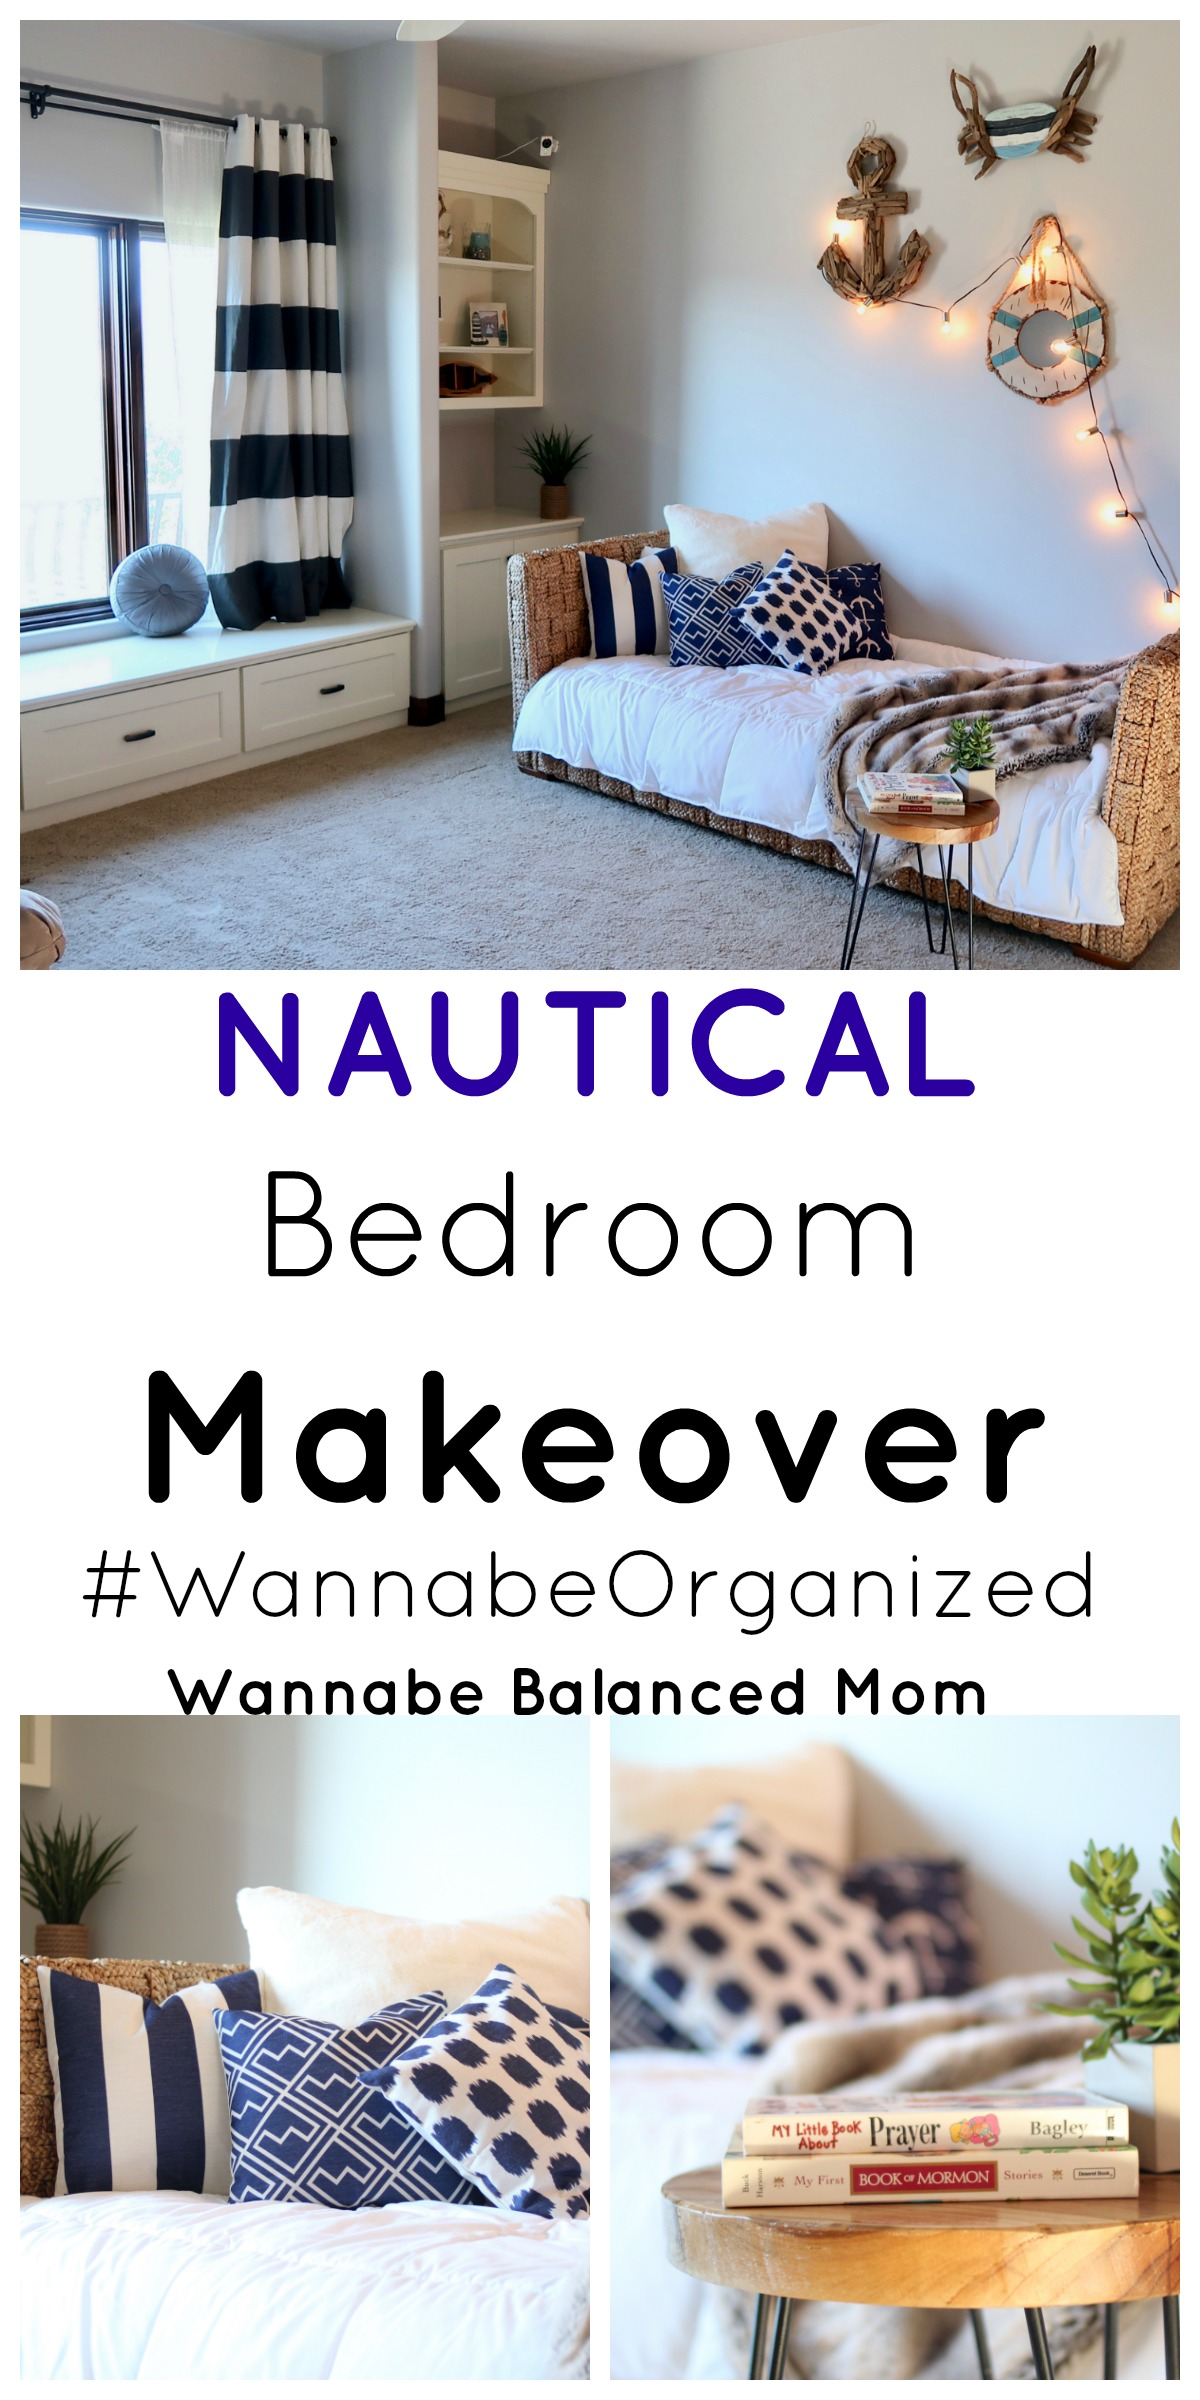 Home decor and remodeling Archives - Wannabe Balanced Mom